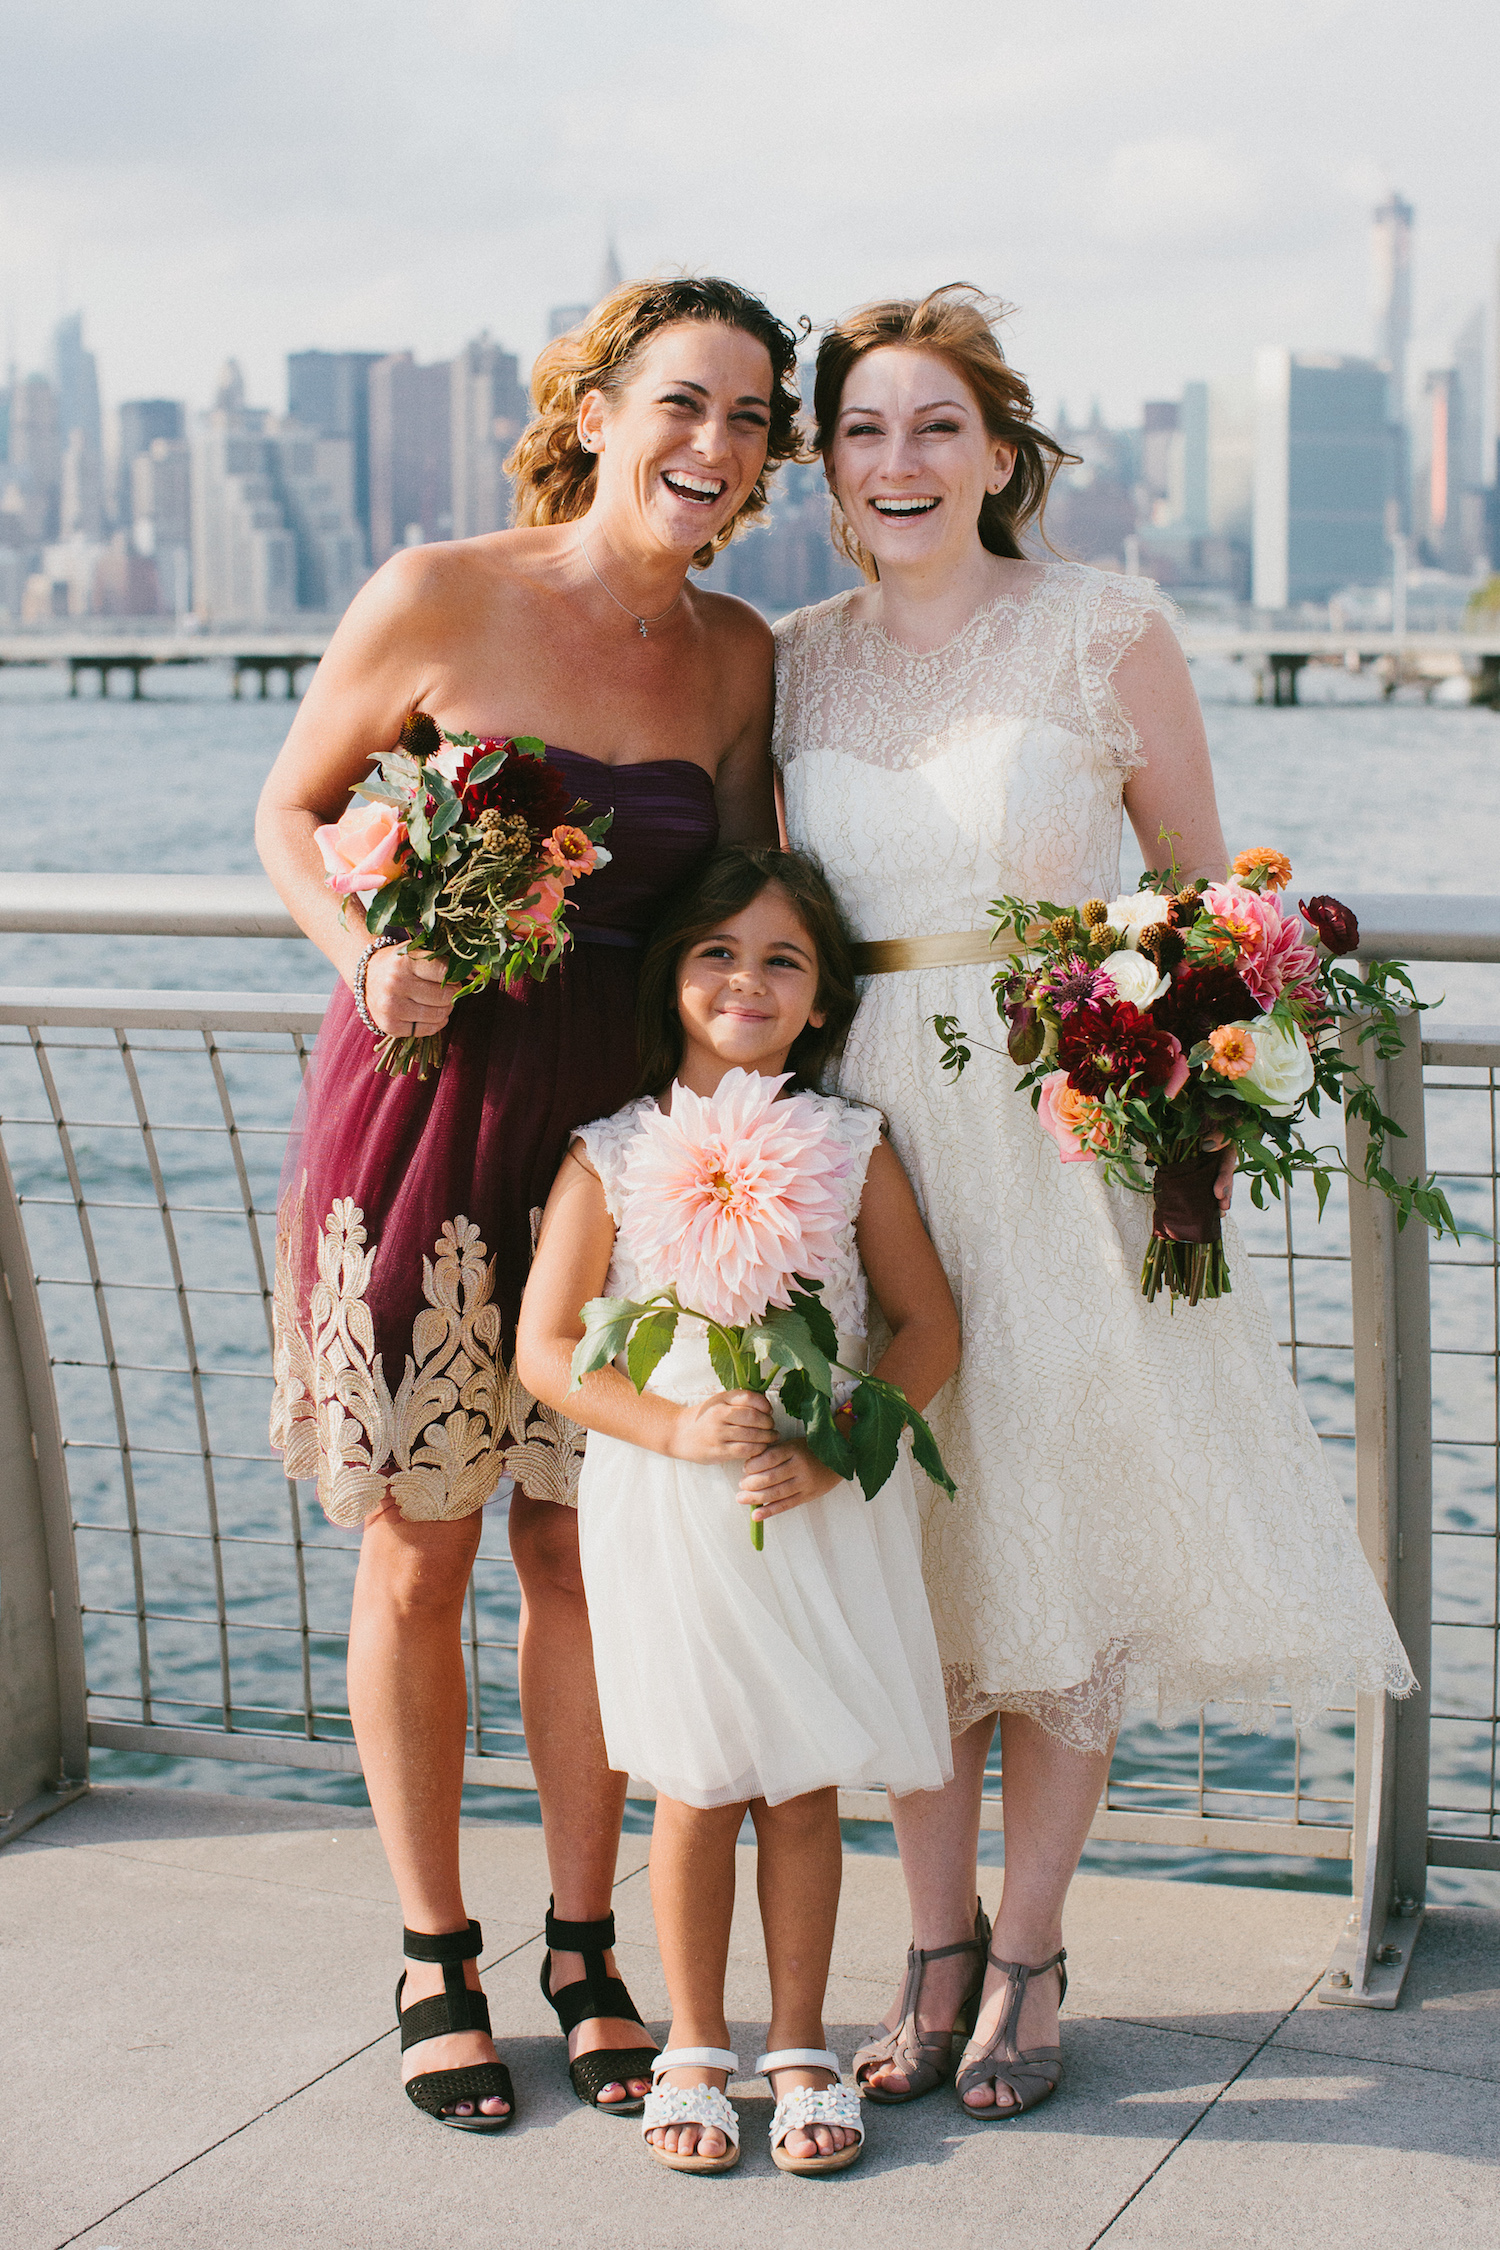 Full Aperture Floral & Corey Torpie Photography  - Brooklyn Wedding - 39.jpeg